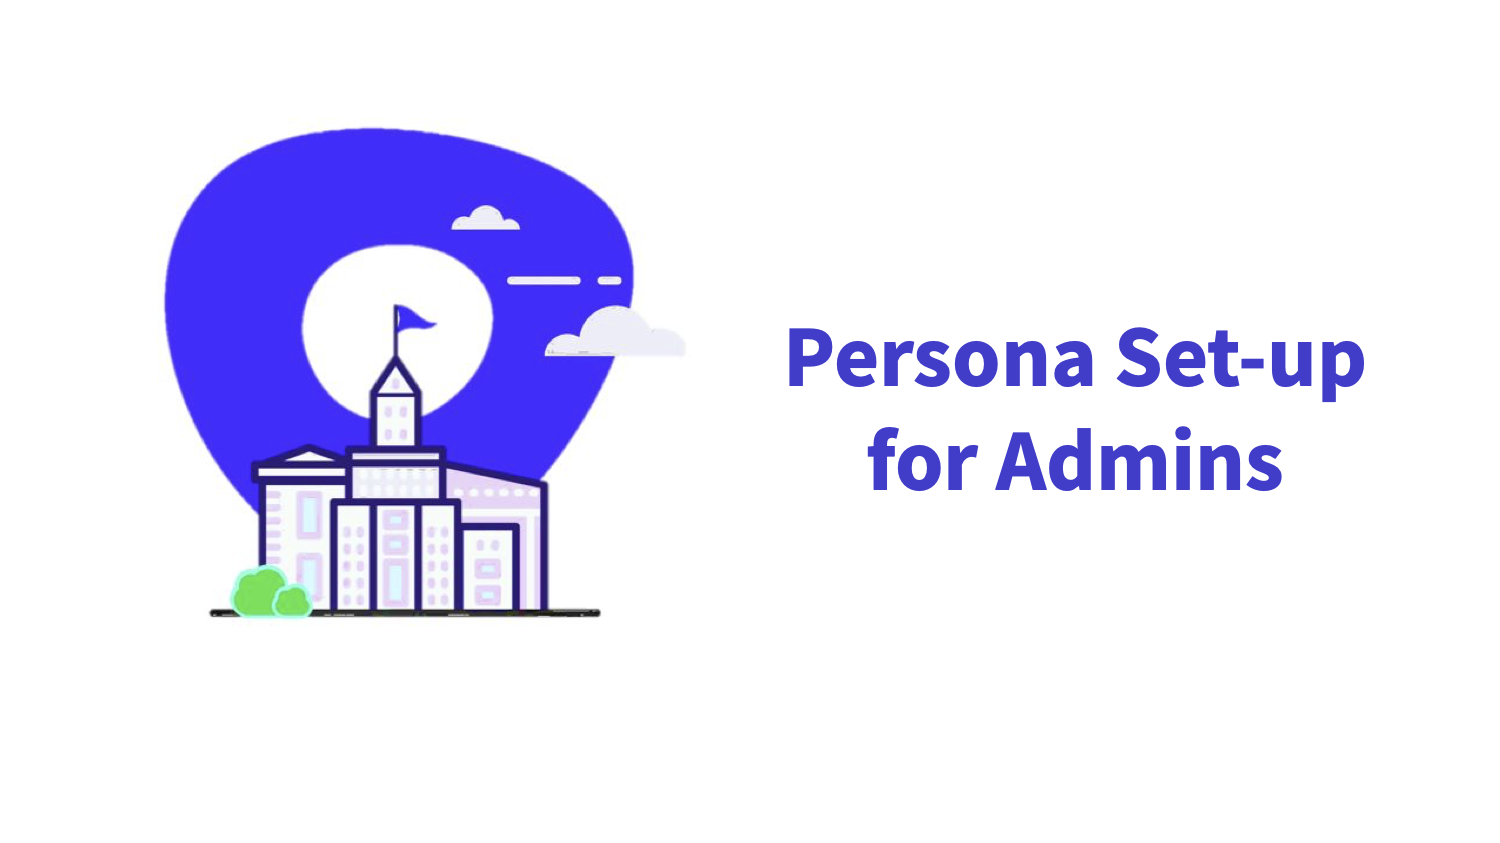 Persona Set-up for Admins